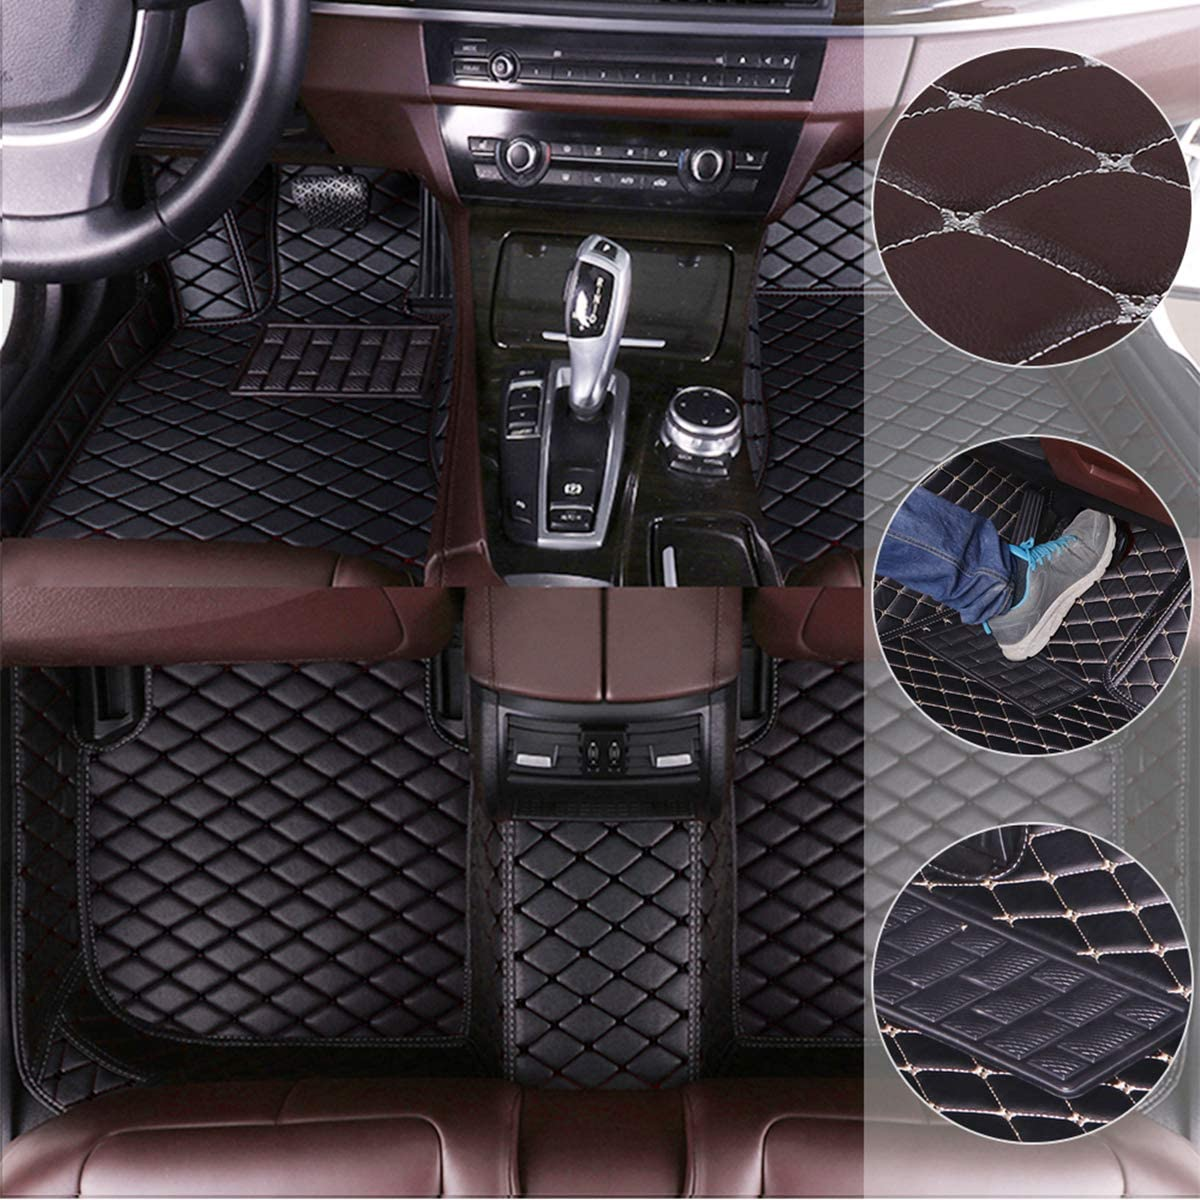 Car Floor Mats for Mercedes Benz ML-Class AMG 63 2008-2012 Custom Leather mat Full Surrounded Cargo Liner All Weather Protection Waterpoof Non-Slip Set Left Drive Black